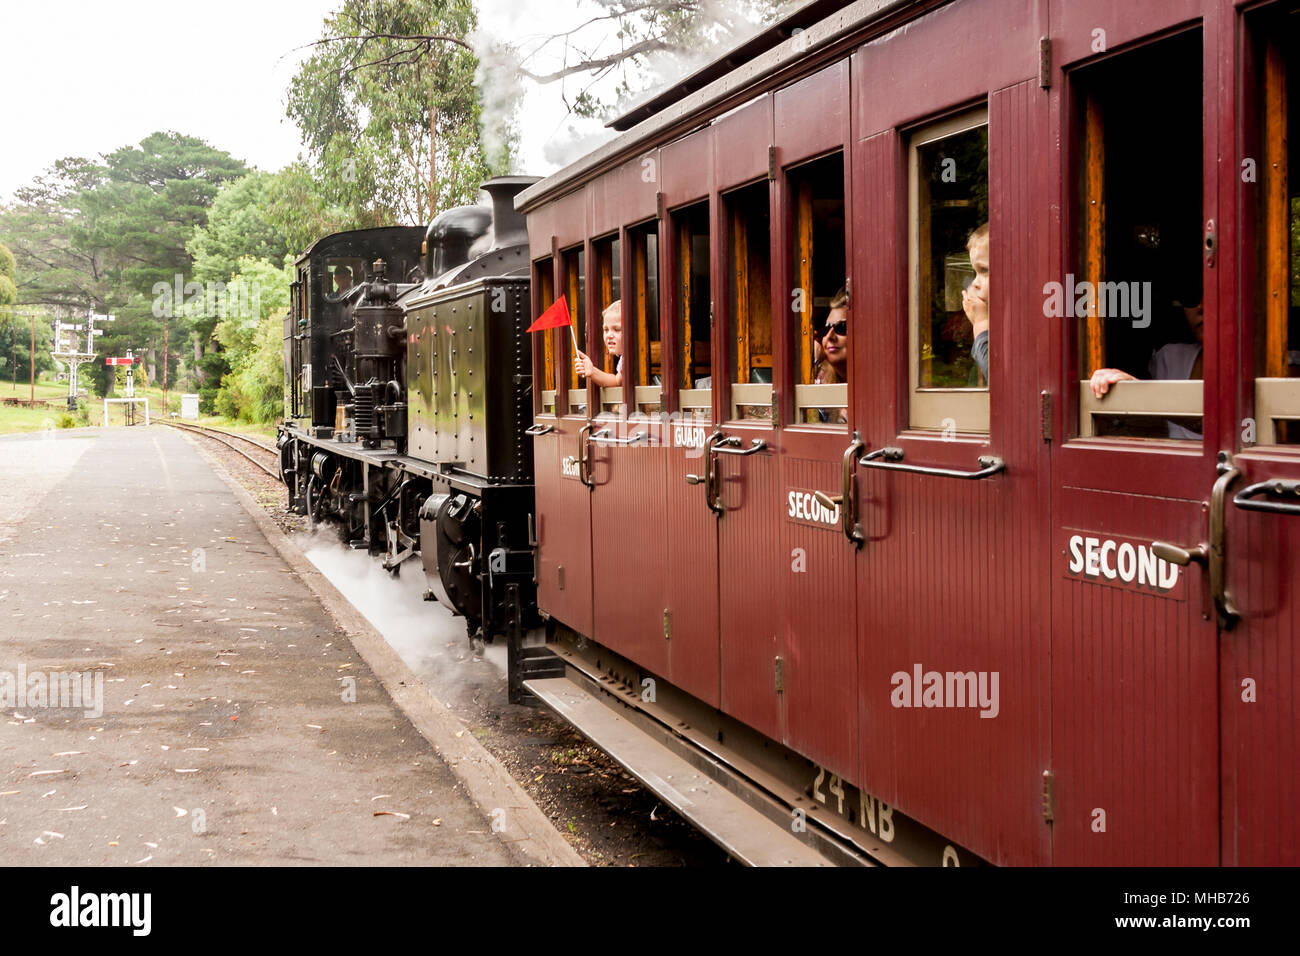 Melbourne, Australia. Puffing Billy steam train with passengers. Historical narrow railway in the Dandenong Ranges near Melbourne. - Stock Image